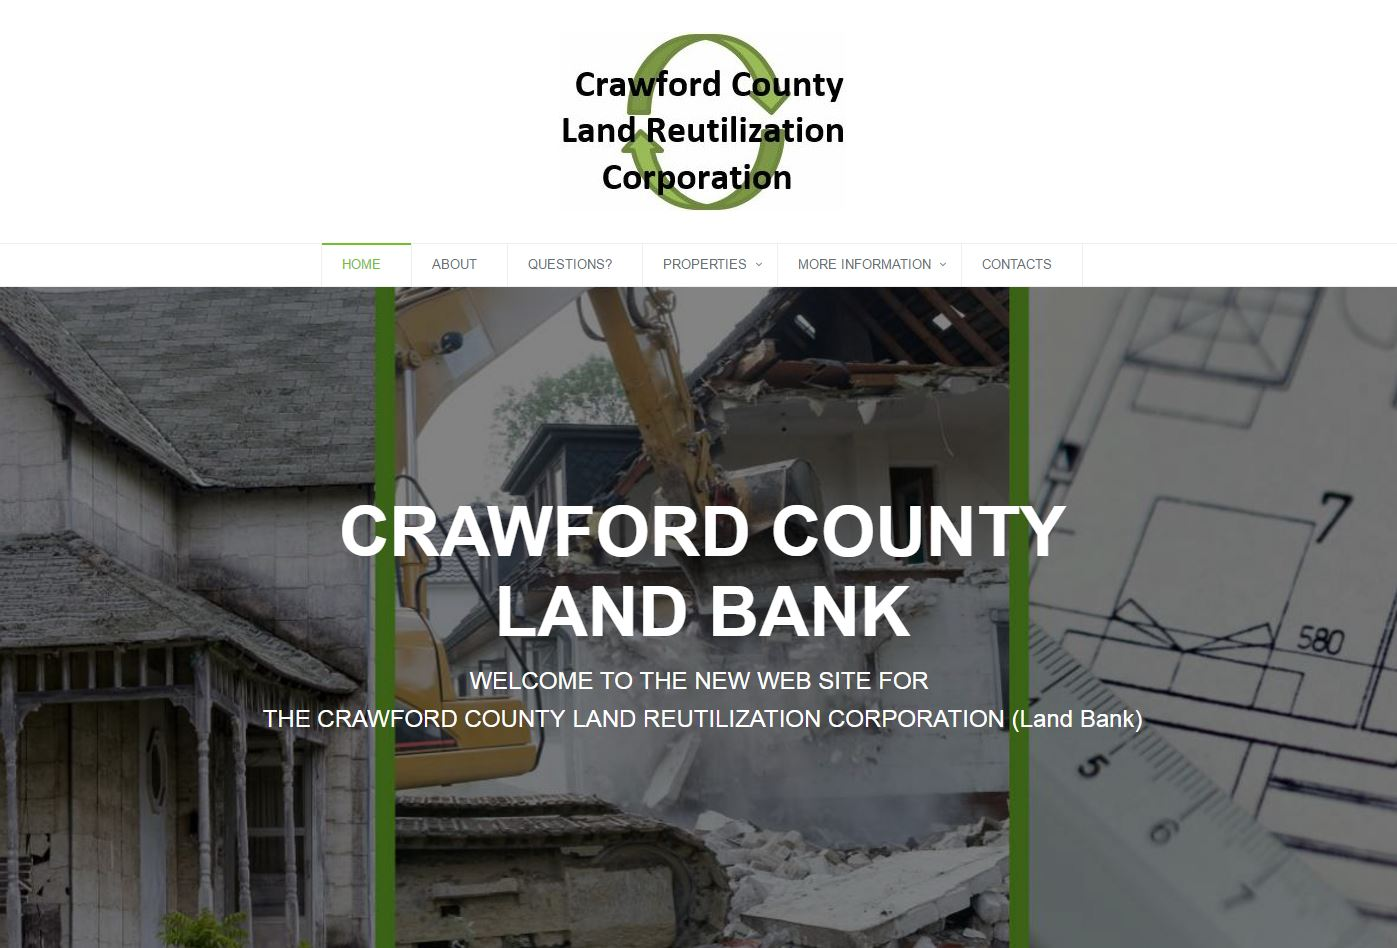 Crawford County Land Bank Website